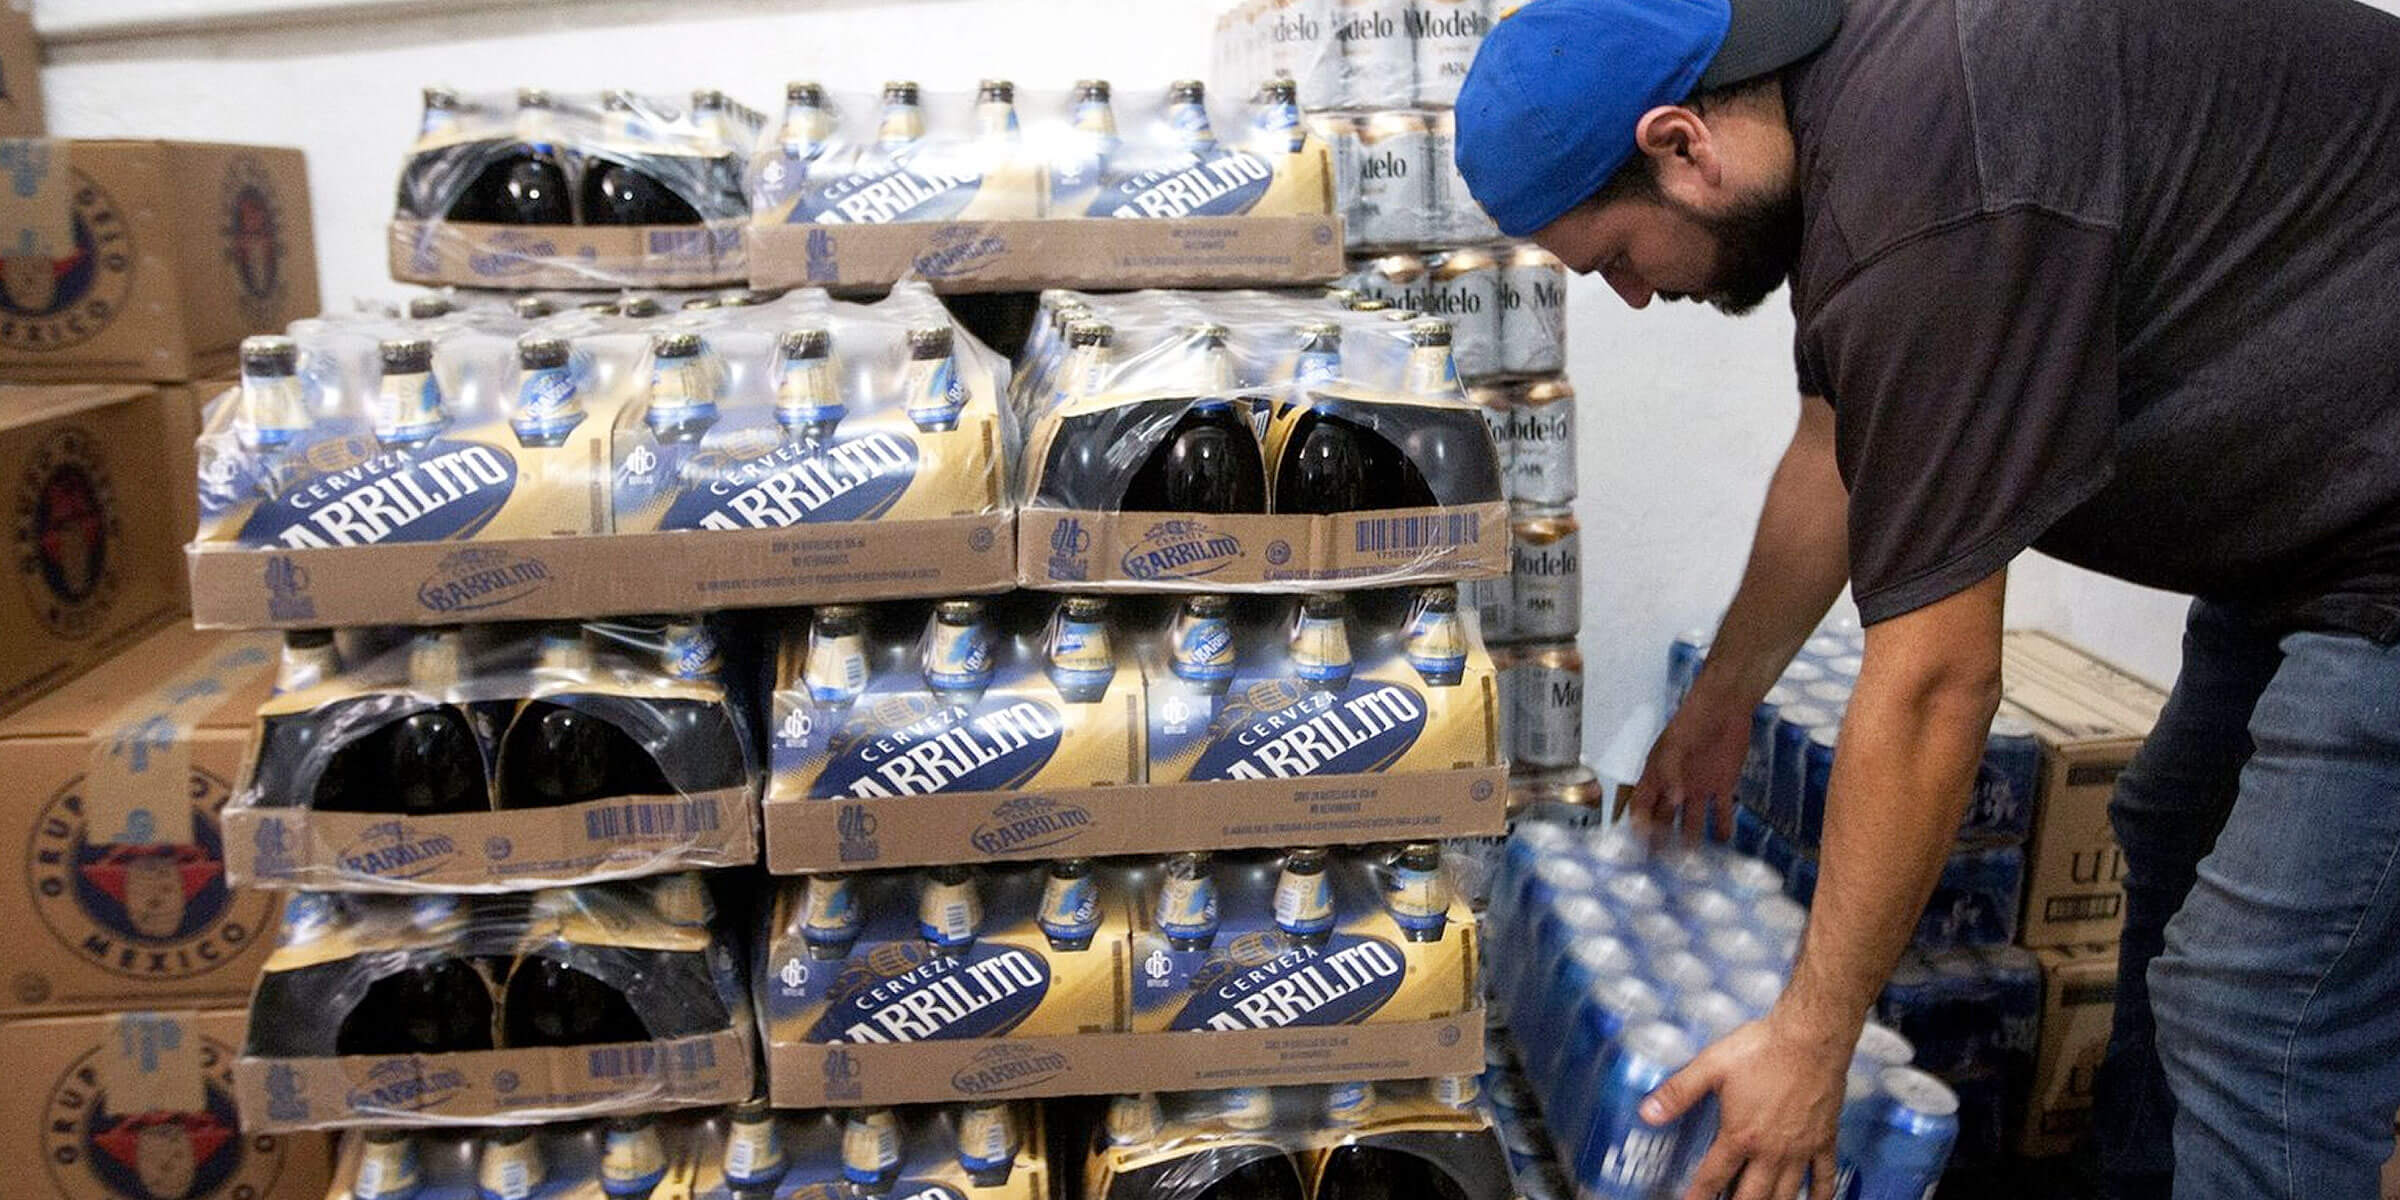 A man picks up a case of beer at a shop in Monterrey, Nuevo Leon state in Mexico